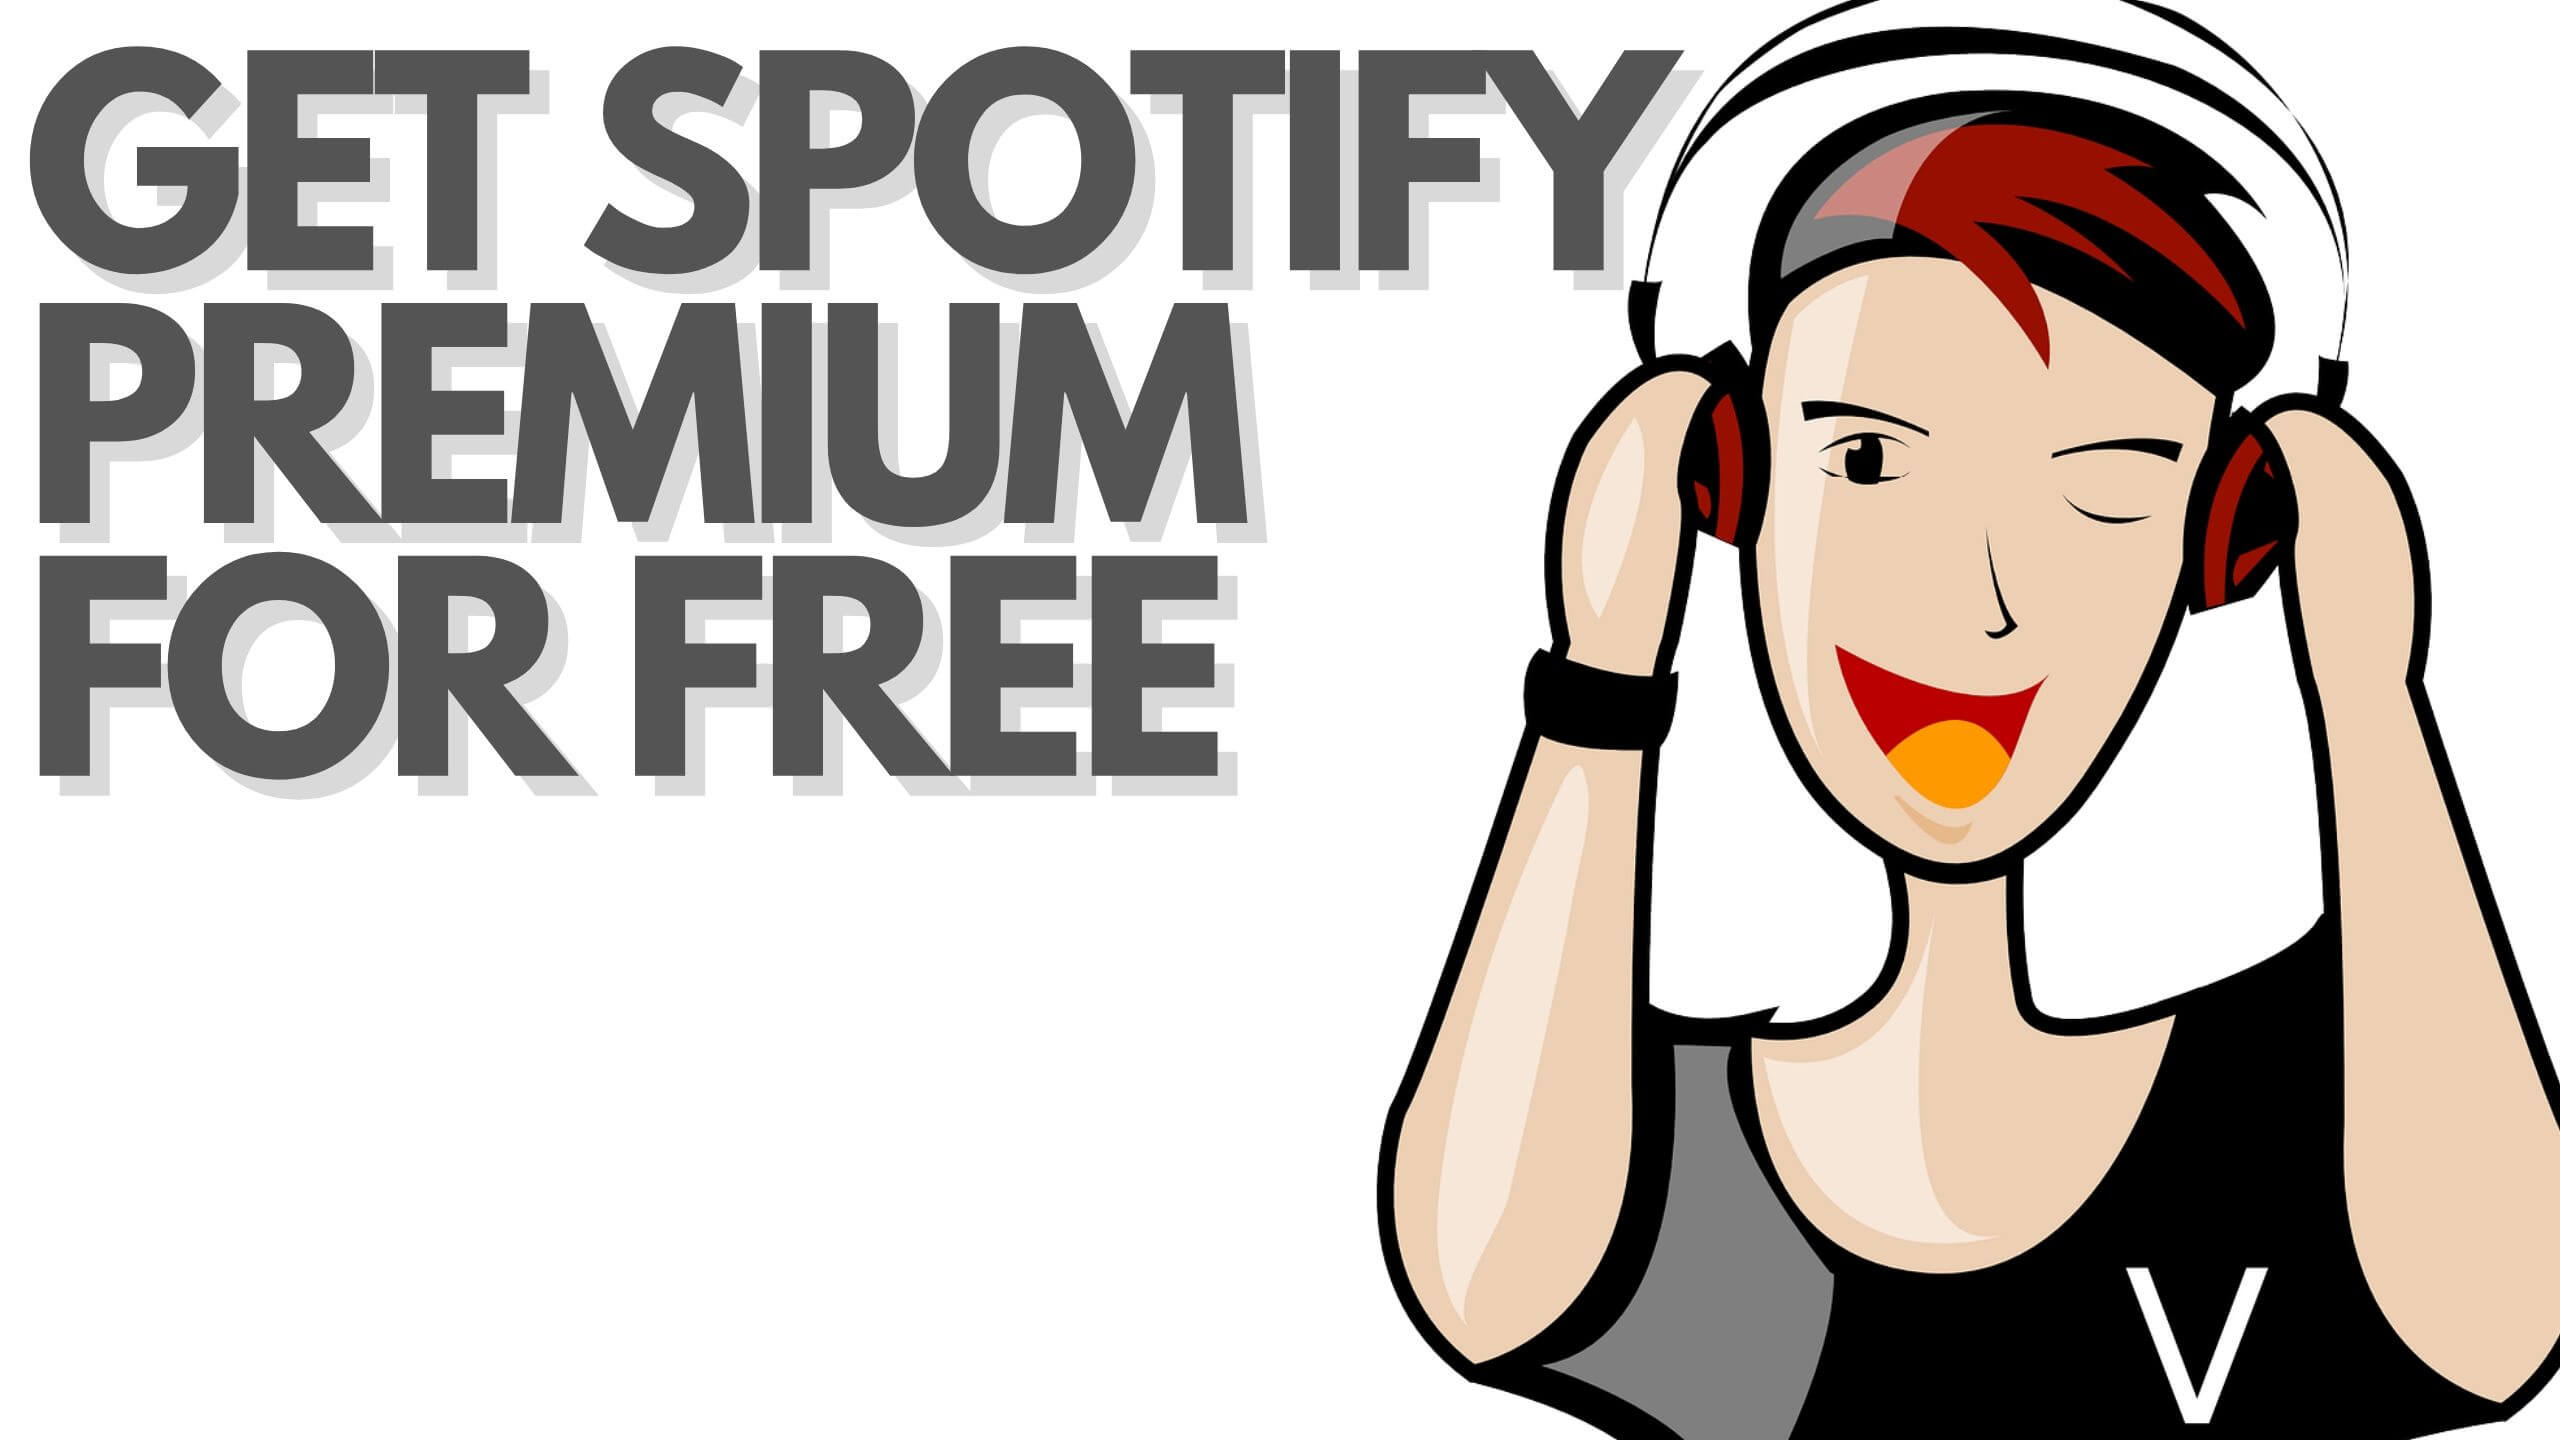 How To Get Spotify Premium For Free (2019) NO HACKING